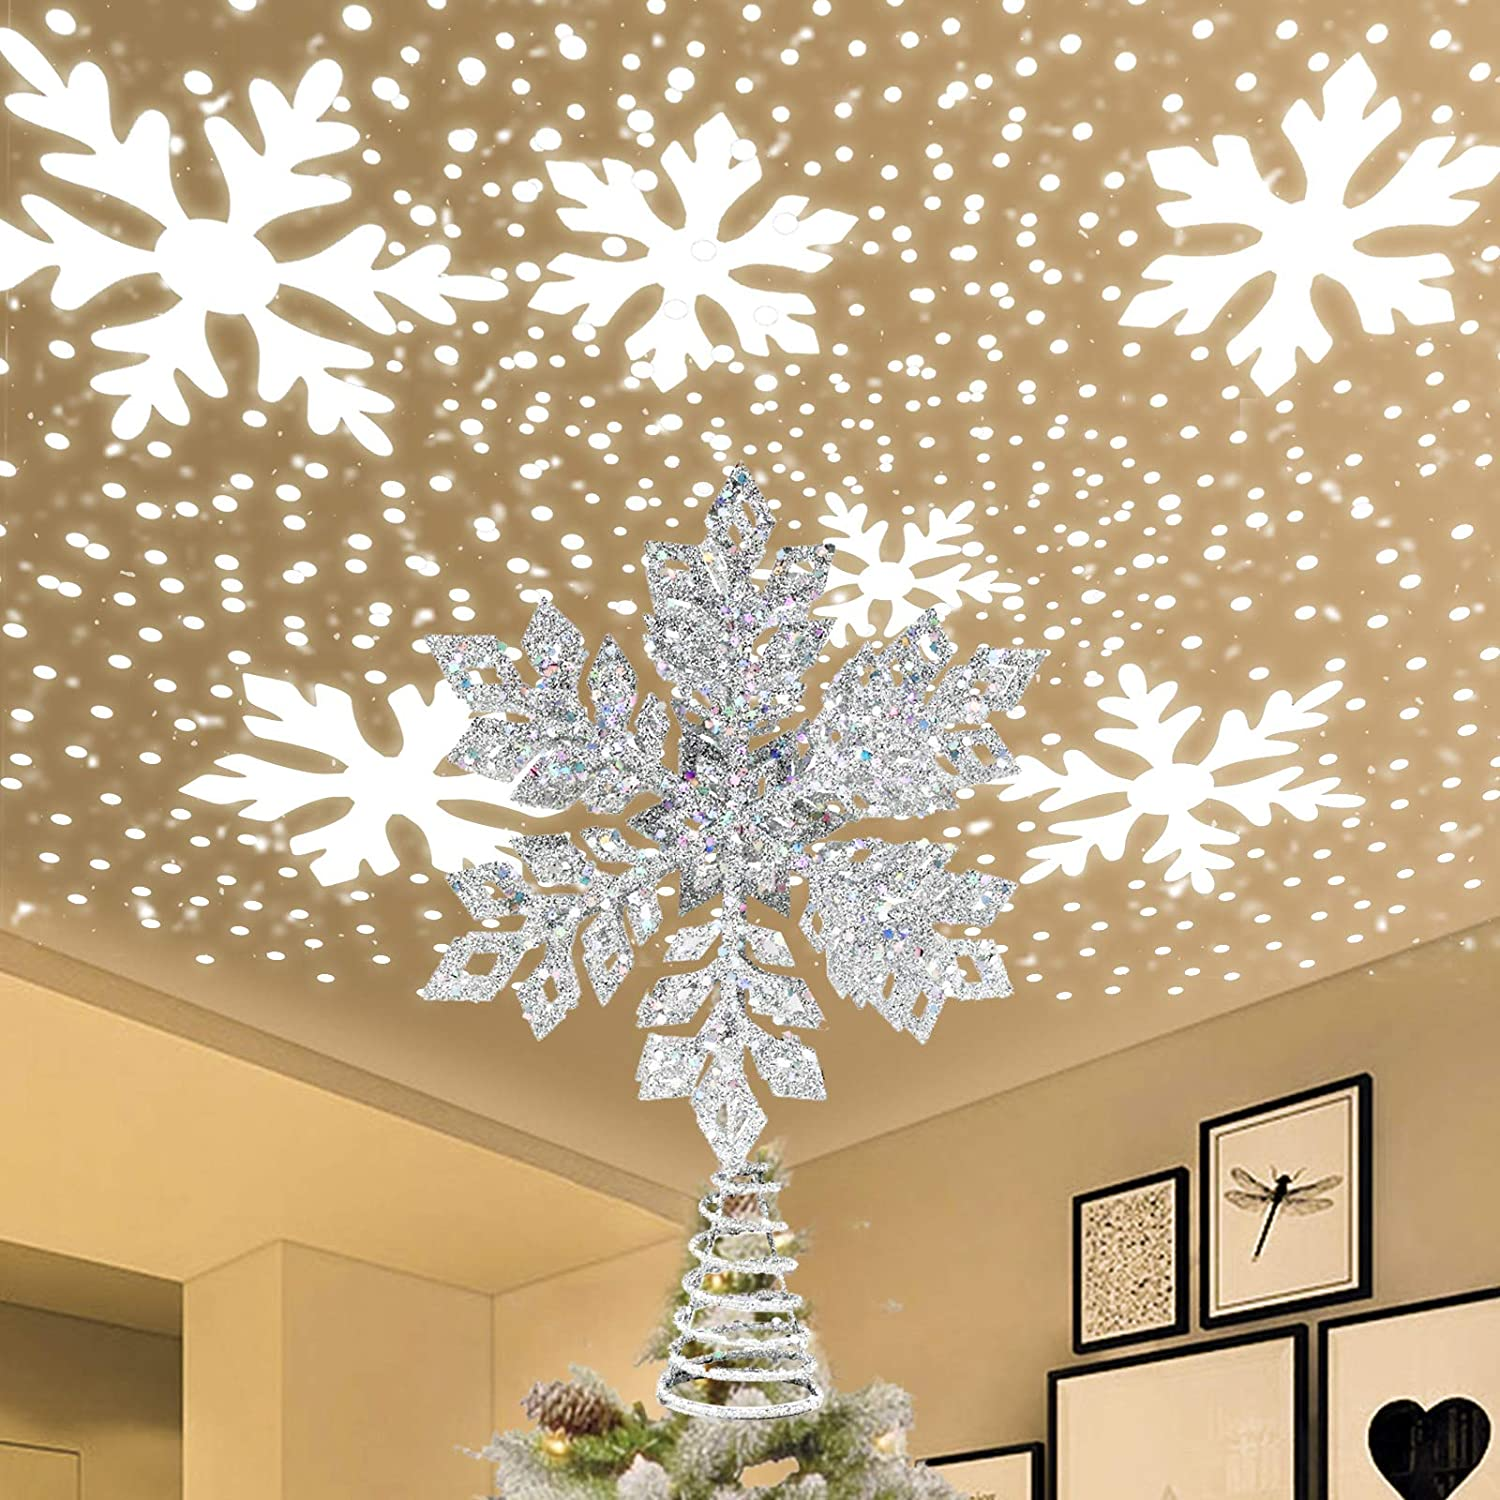 Amazon Com Iidee Christmas Tree Topper Metal Glittery Silver Snow Tree Topper With 3d Rotating Snowflake Led Projector For Xmas Holiday Party Gift Décor Kitchen Dining